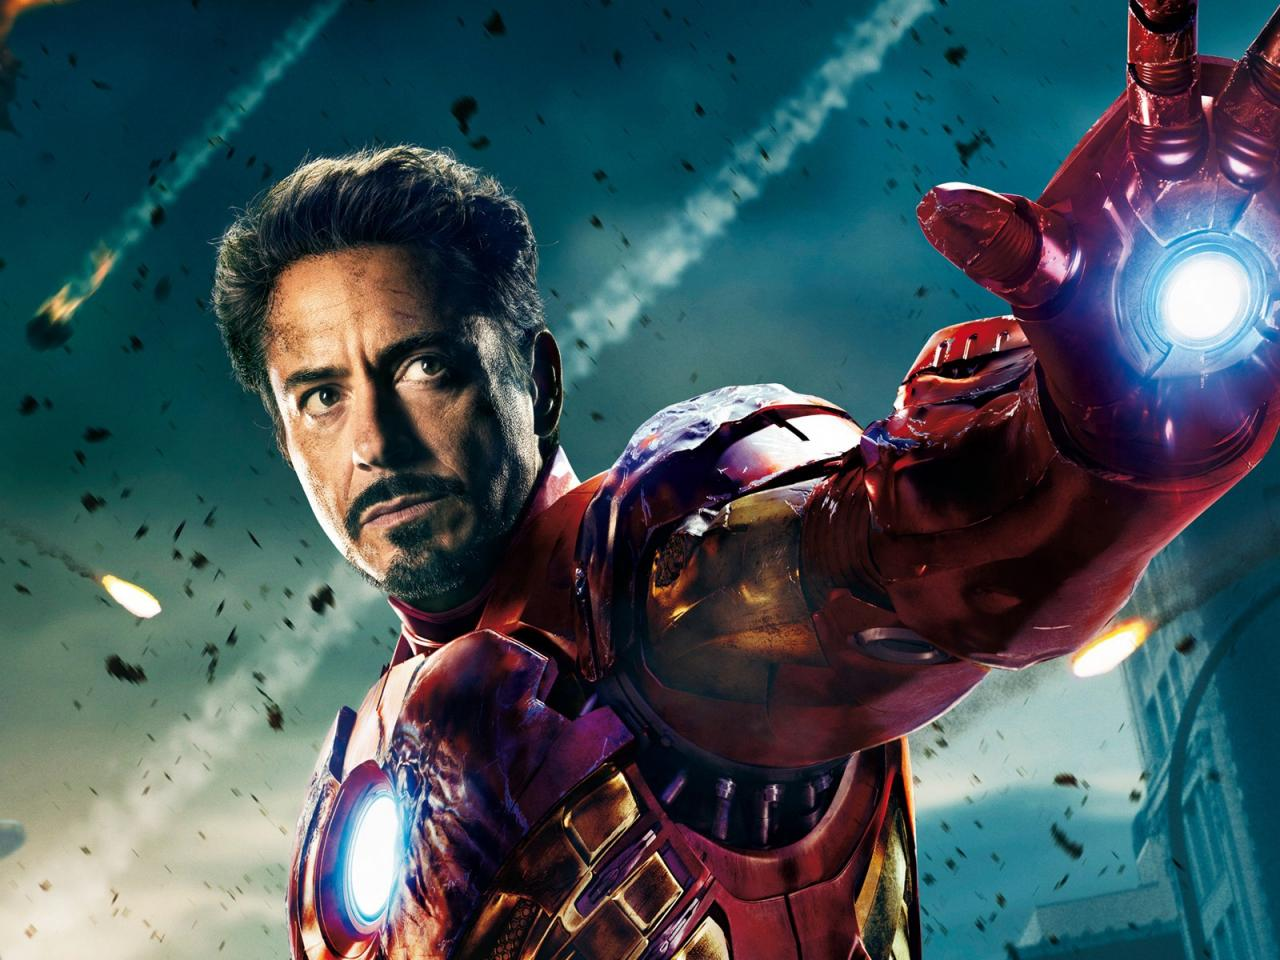 Free hd wallpaper robert downey jr - Images For Robert Downey Jr Iron Man Hd Wallpaper